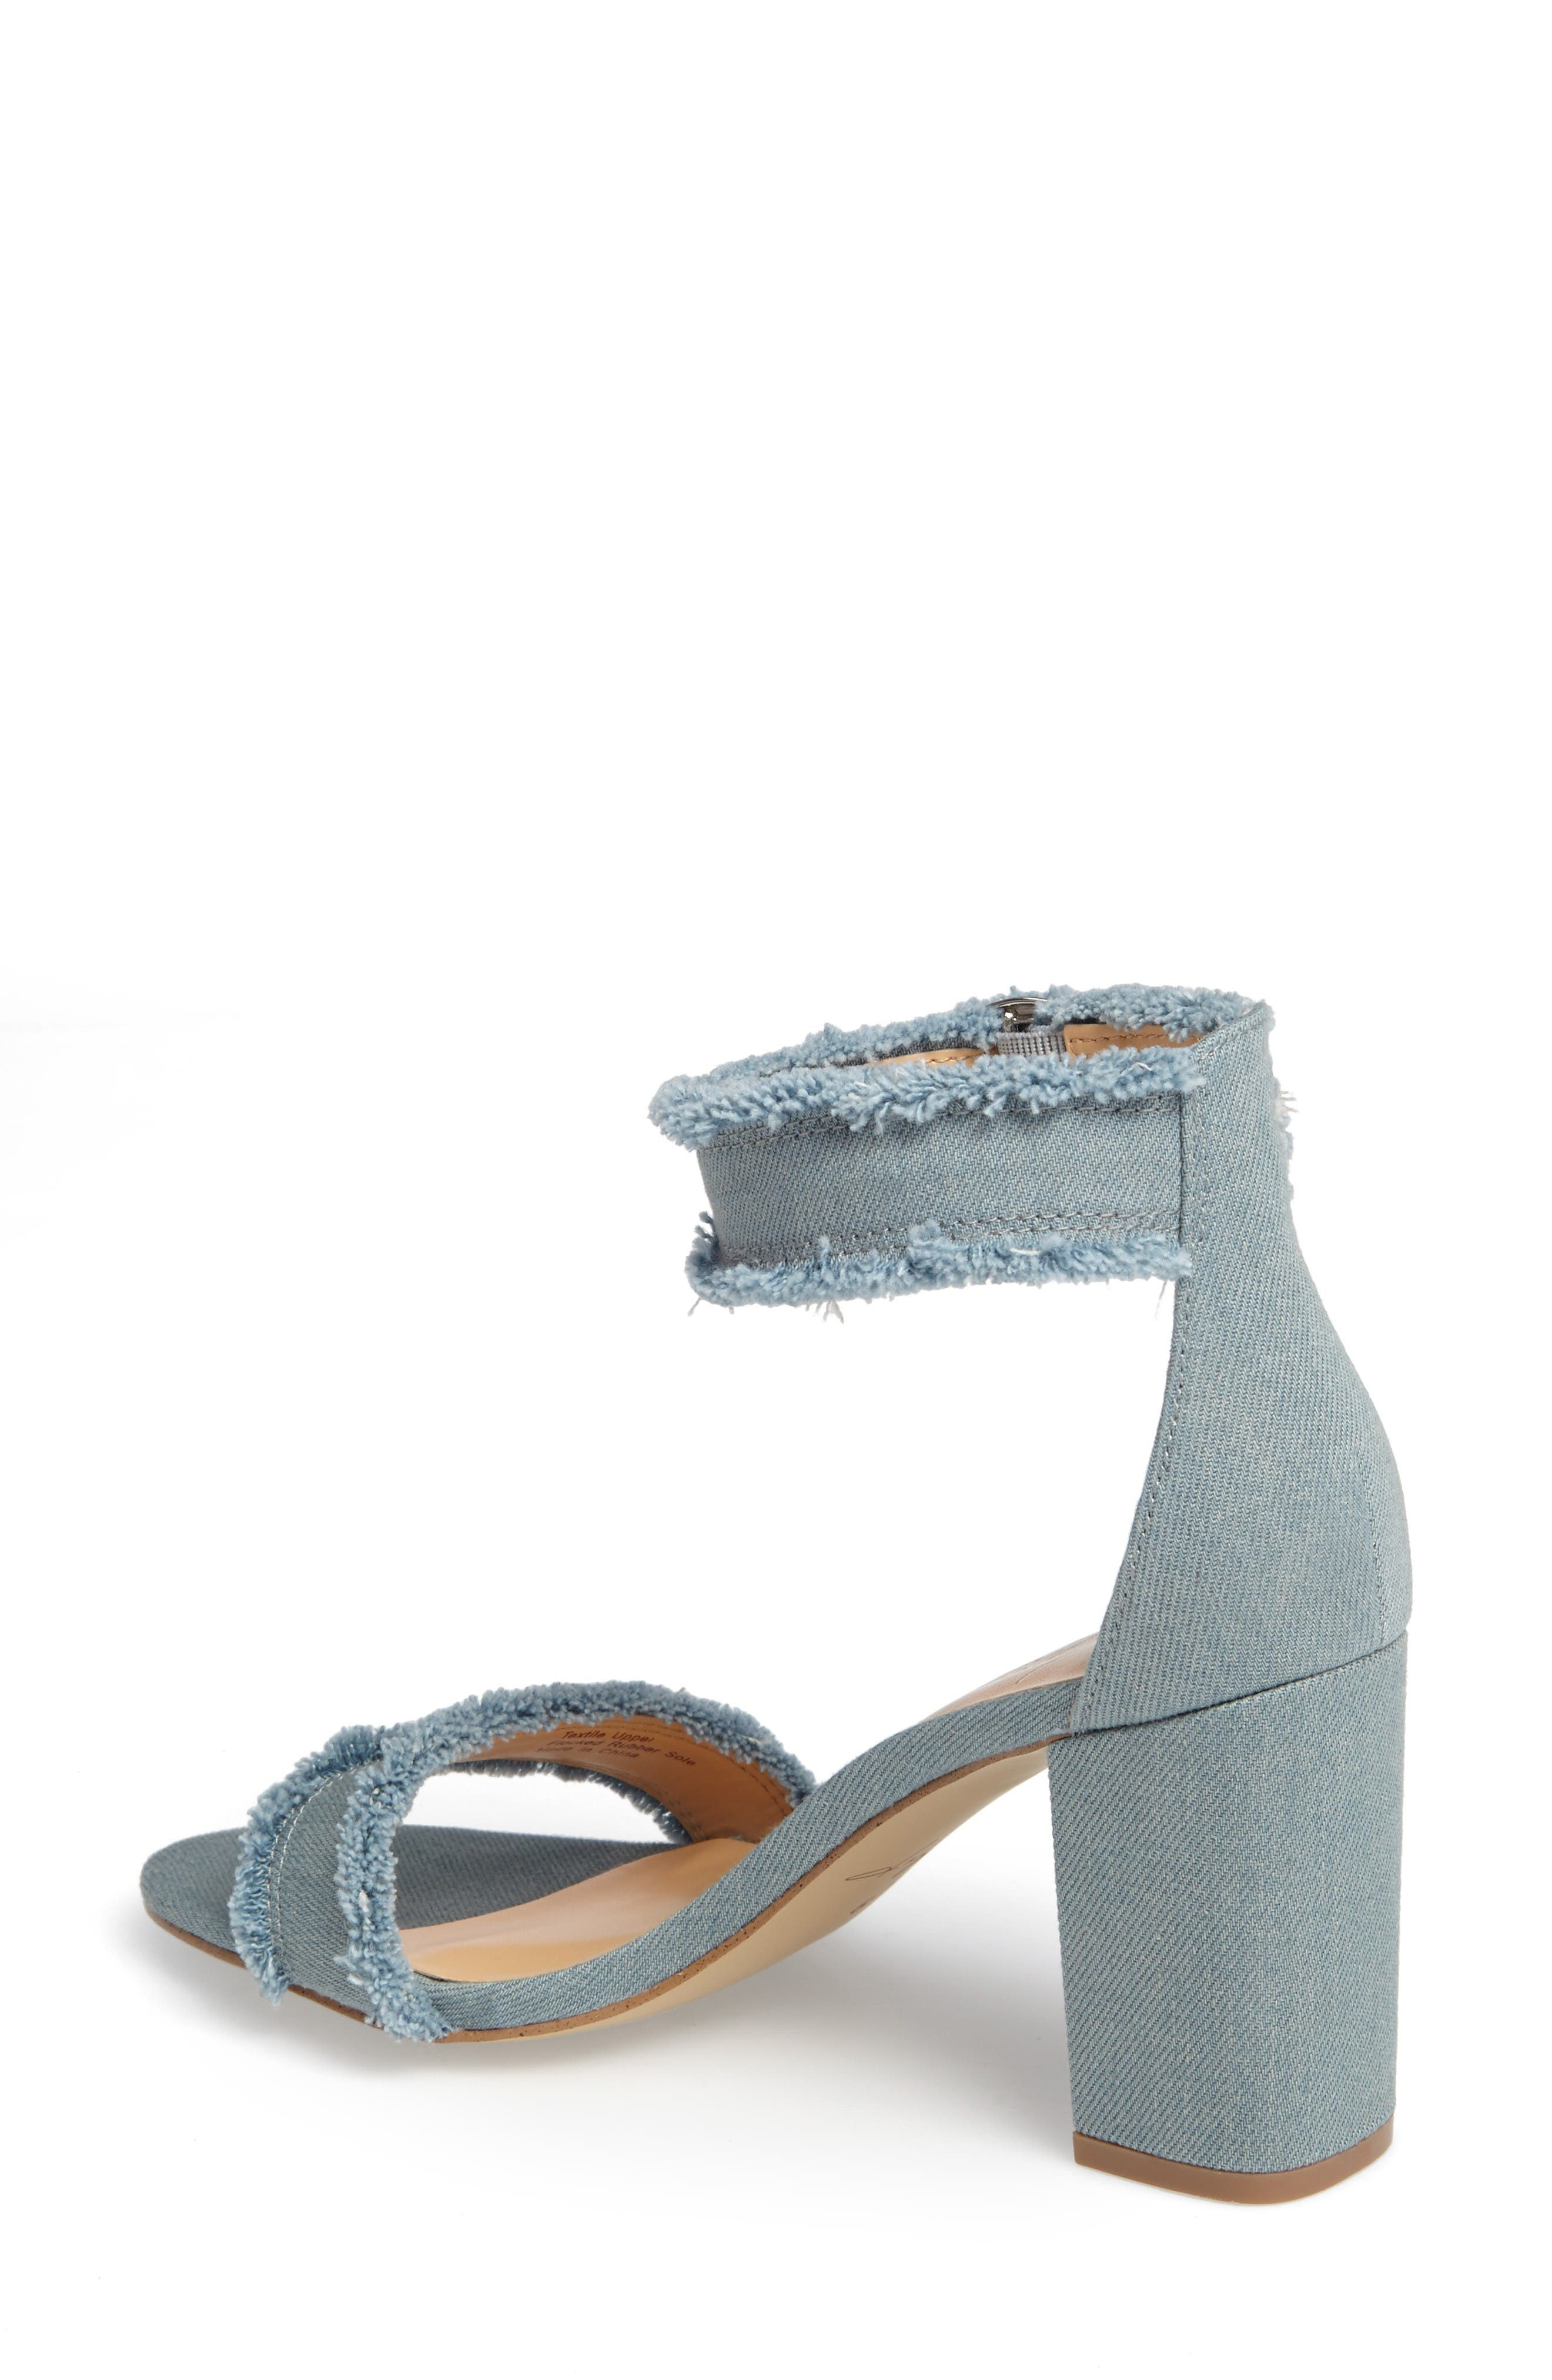 Alternate Image 2  - Daya by Zendaya Shasta Fringe Denim Ankle Strap Sandal (Women)